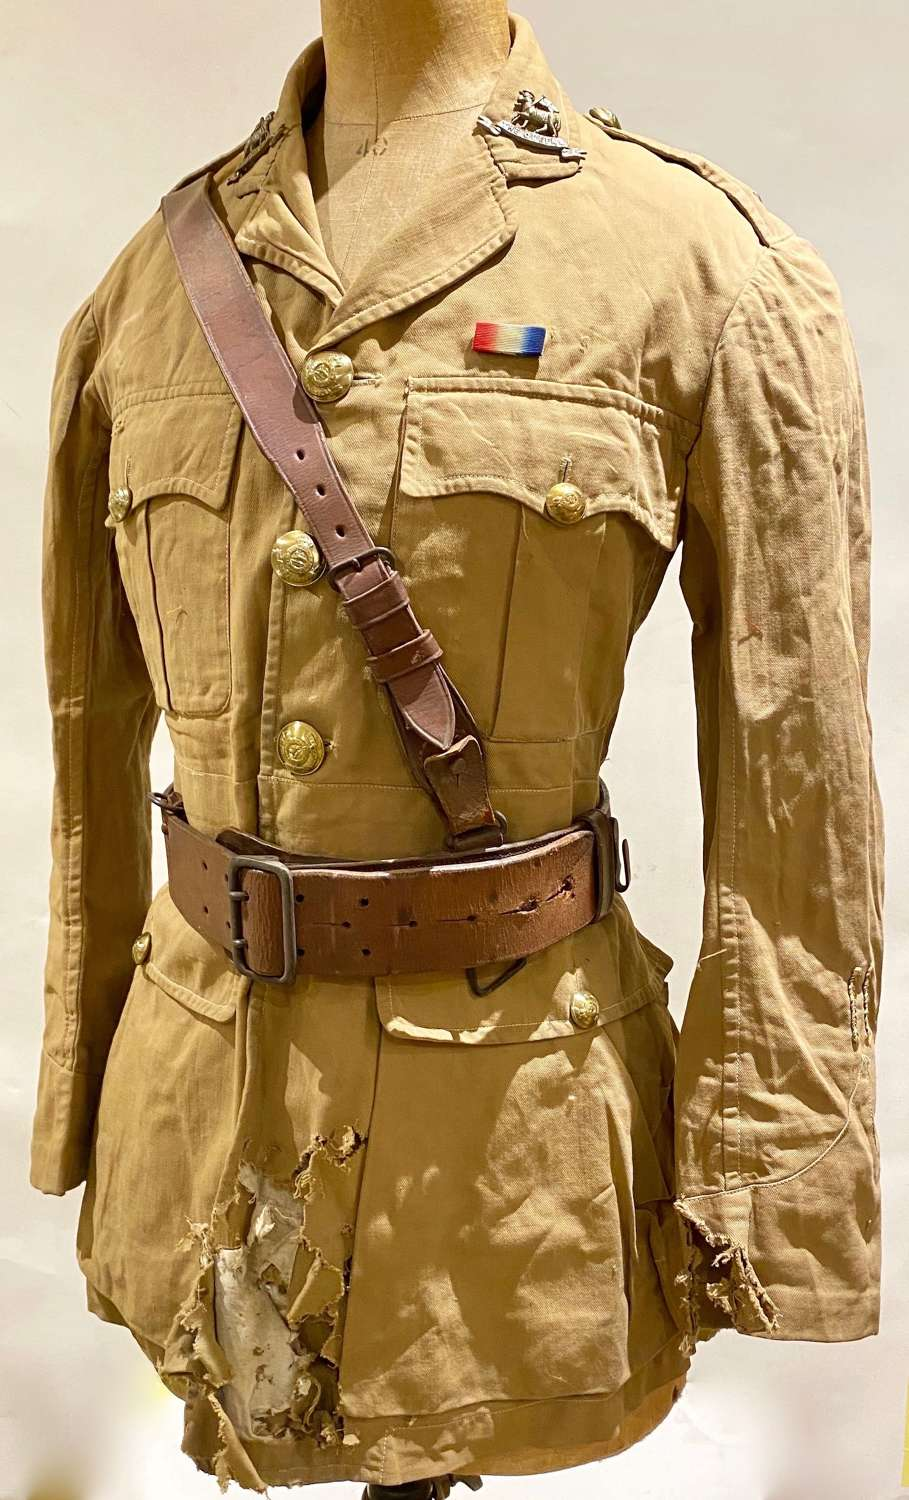 WW1 Attributed Queen's West Surry Regiment Officer's KD Tunic.